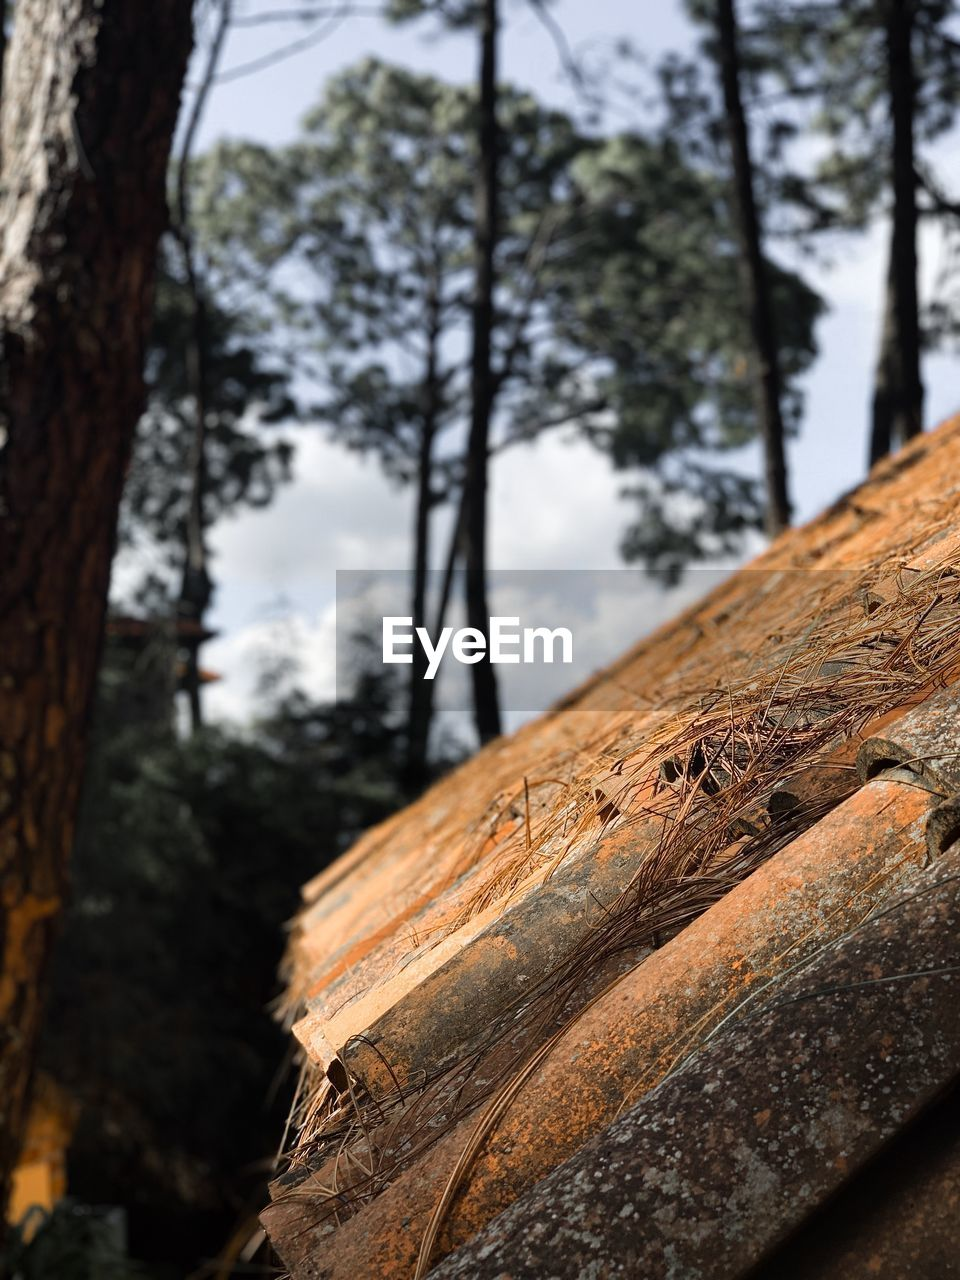 tree, focus on foreground, tree trunk, trunk, plant, close-up, wood - material, textured, nature, no people, day, outdoors, forest, rough, wood, log, tranquility, brown, timber, bark